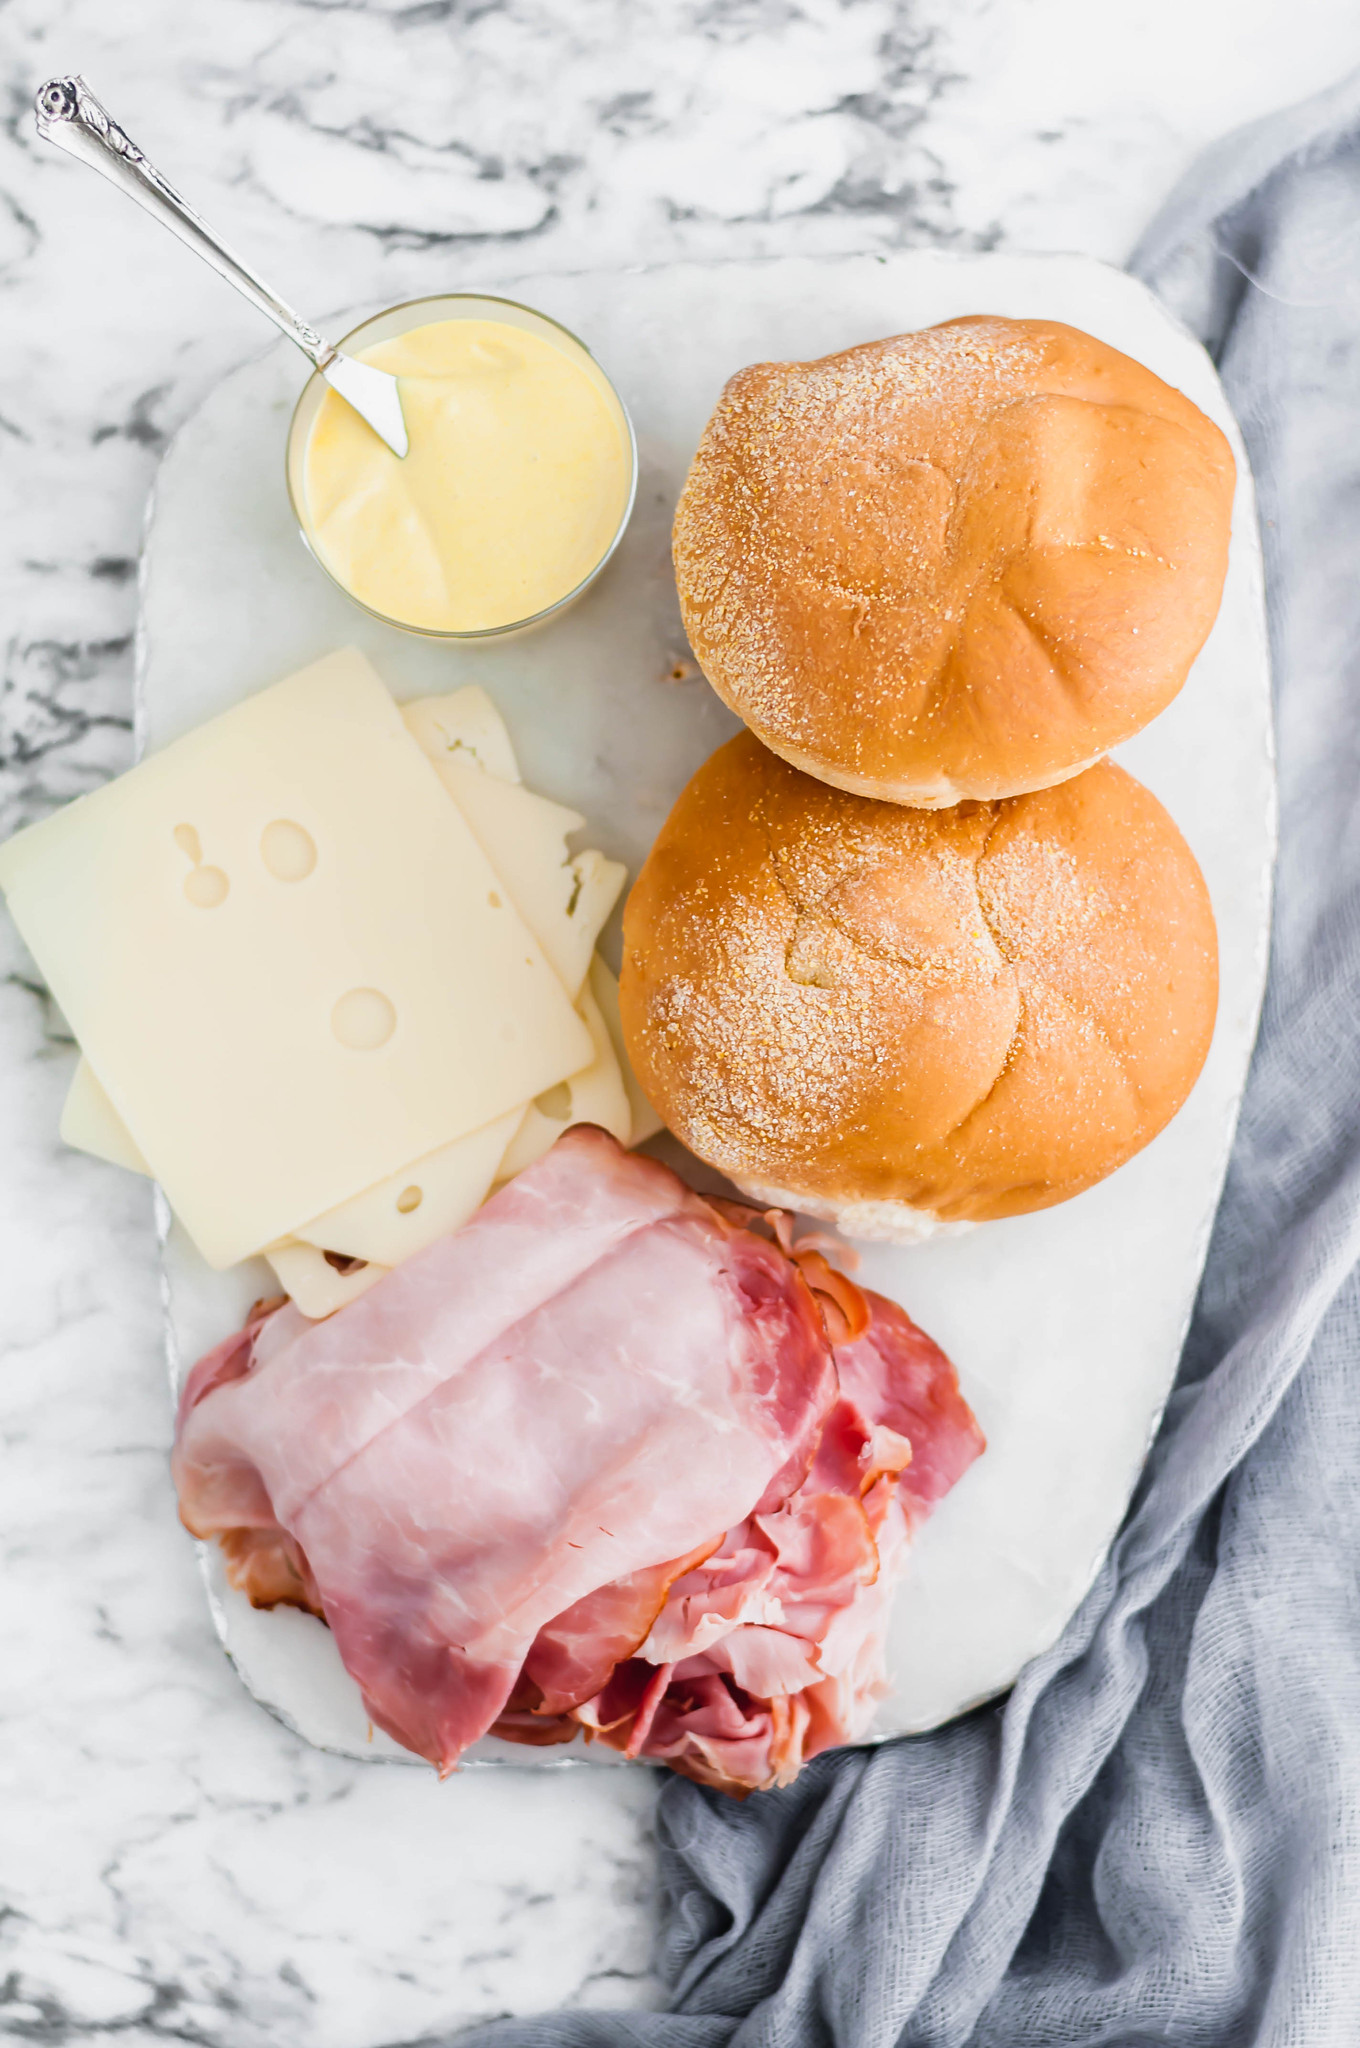 Need an easy lunch or weeknight meal? These Hot Ham and Cheese Sandwiches are the perfect solution. Shaved deli ham (honey ham is my favorite) with melted swiss cheese and a yummy sauce.